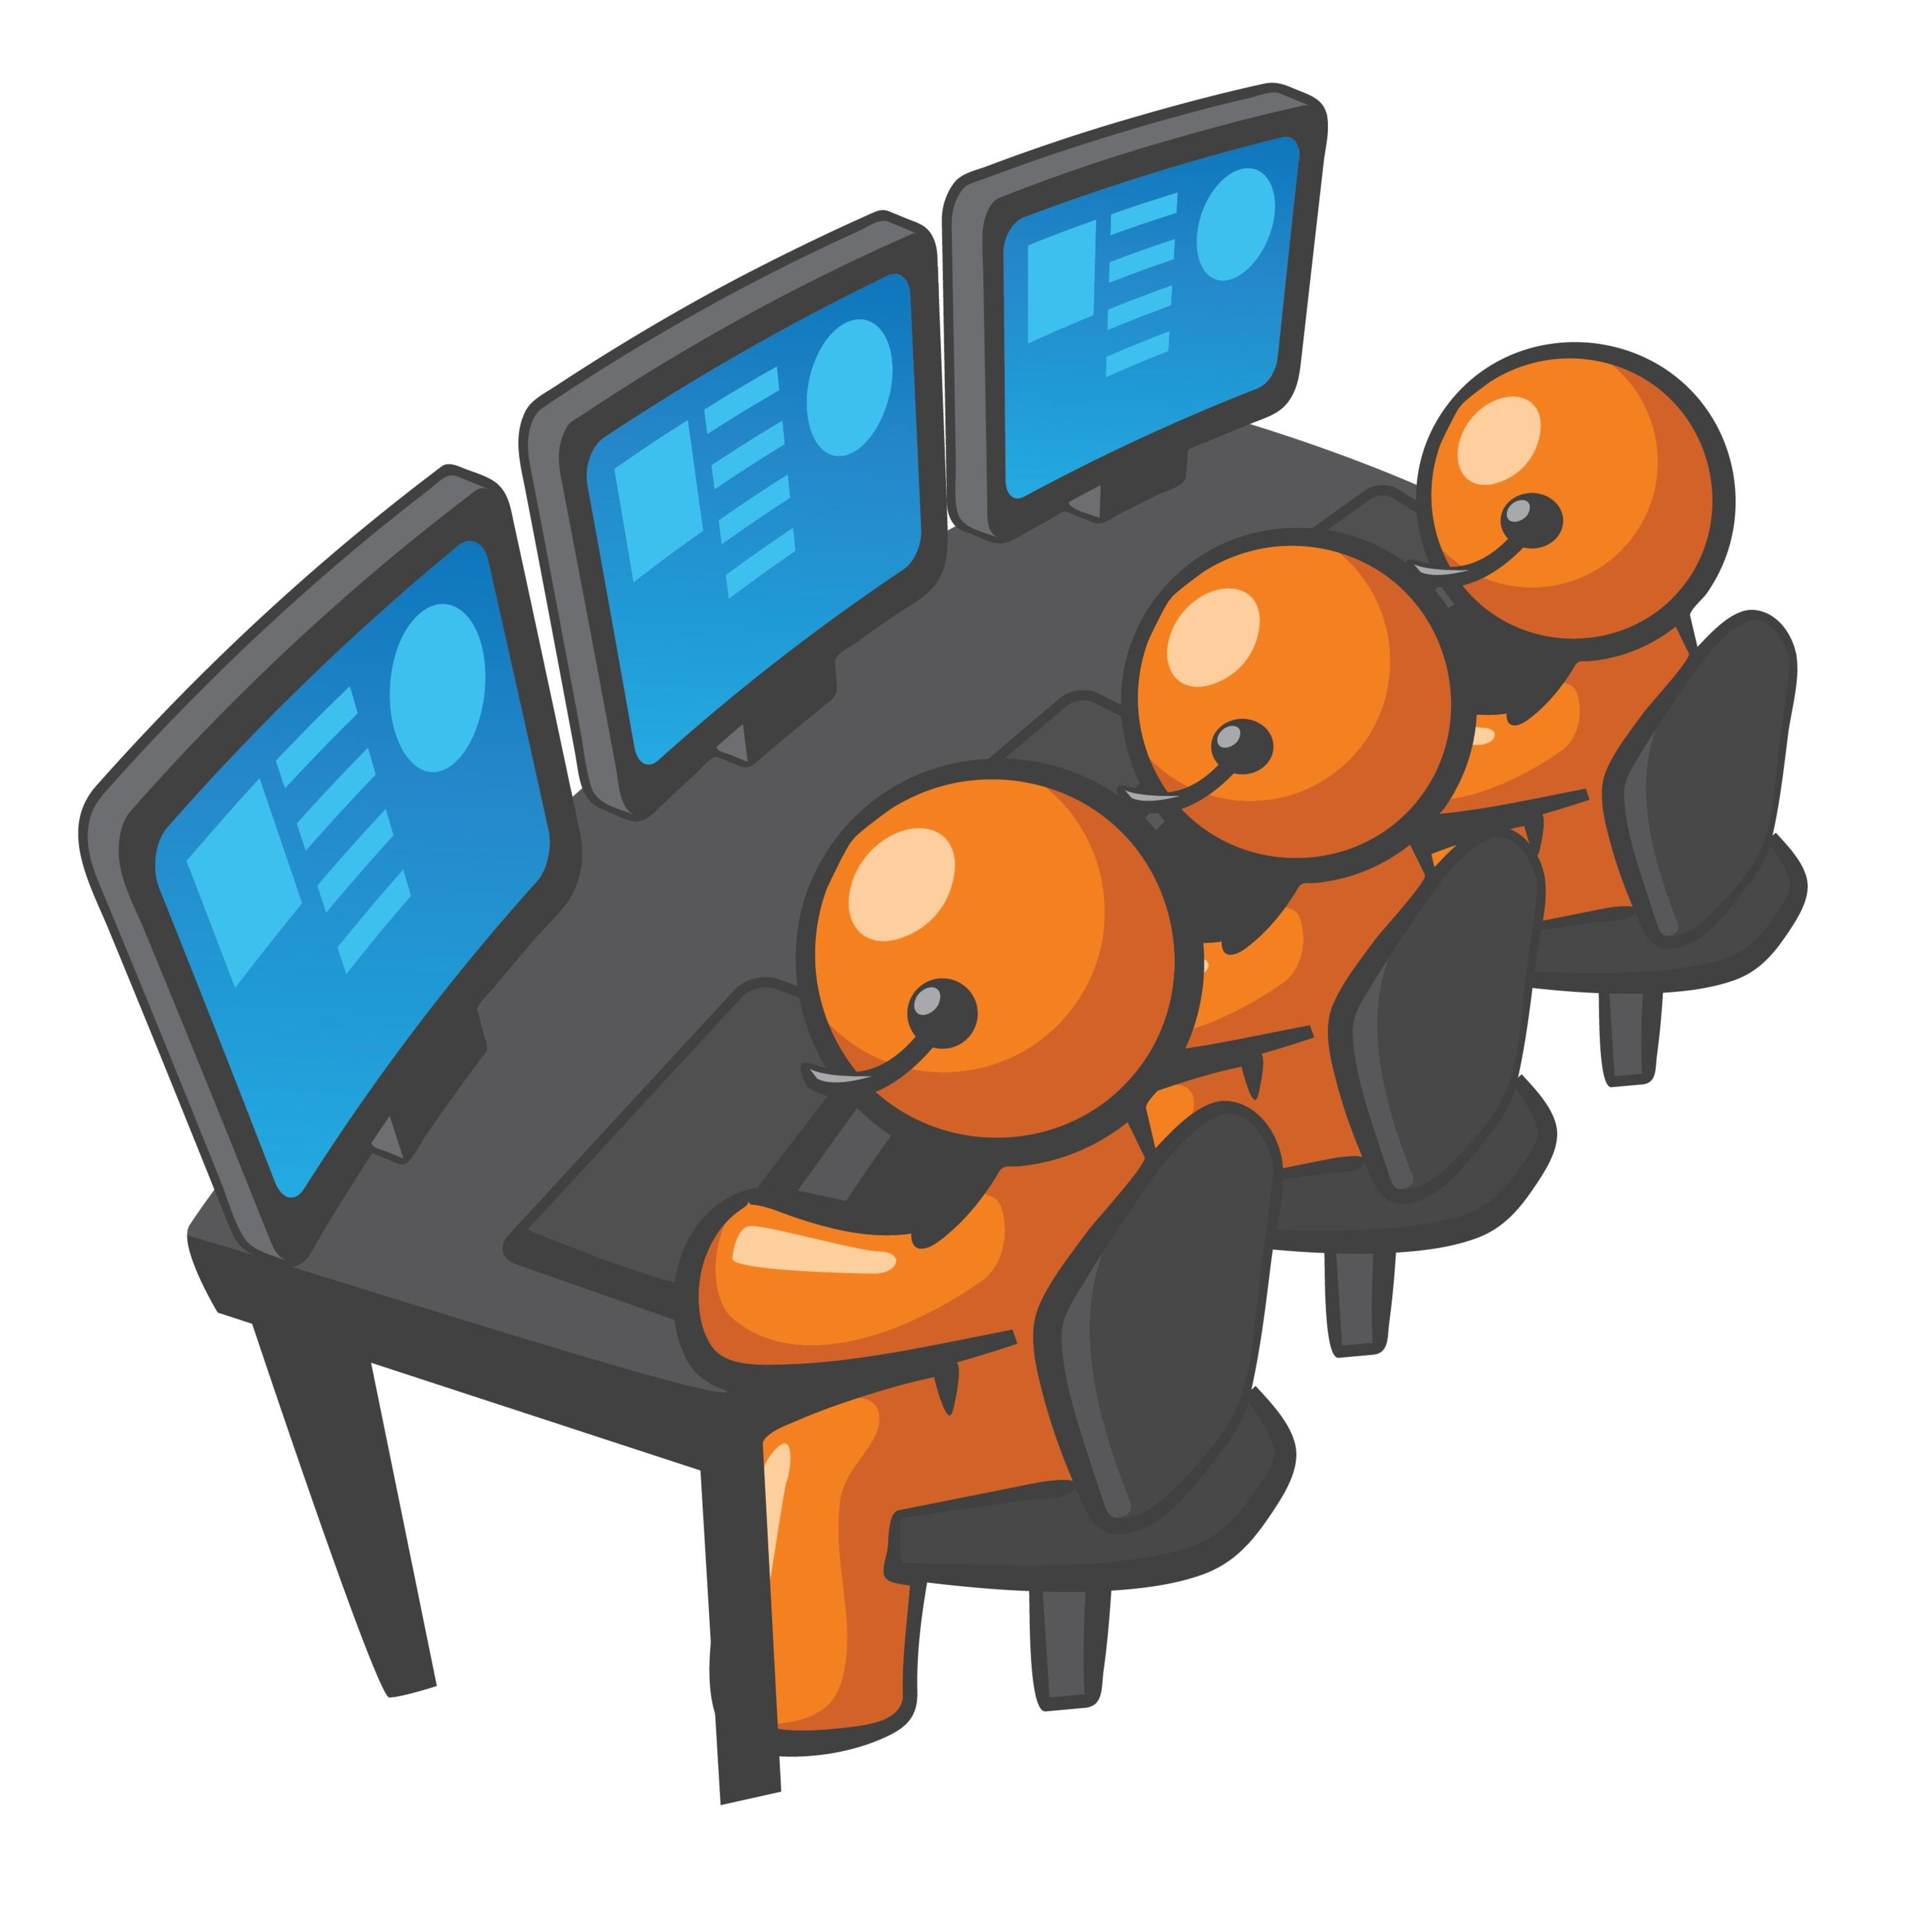 24/7 IT Experts